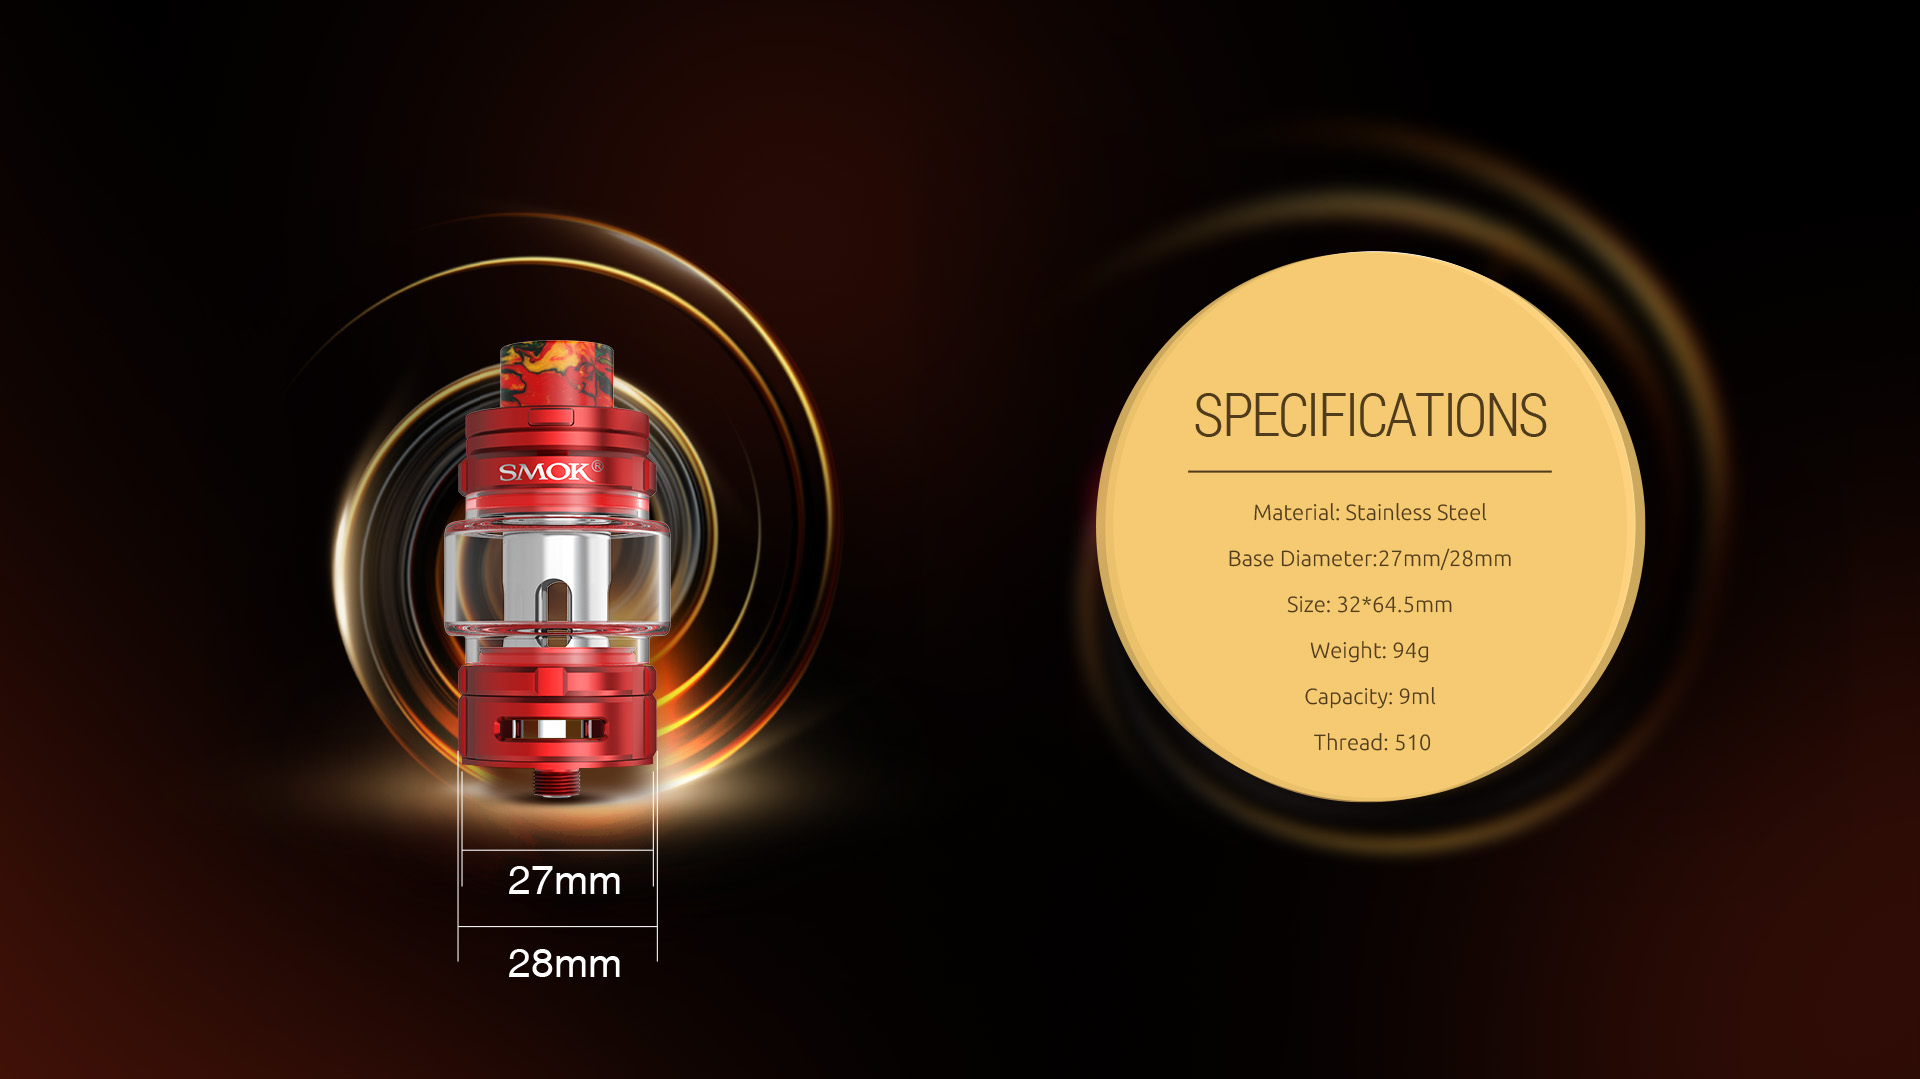 The Specifications of SMOK TFV16 Tank